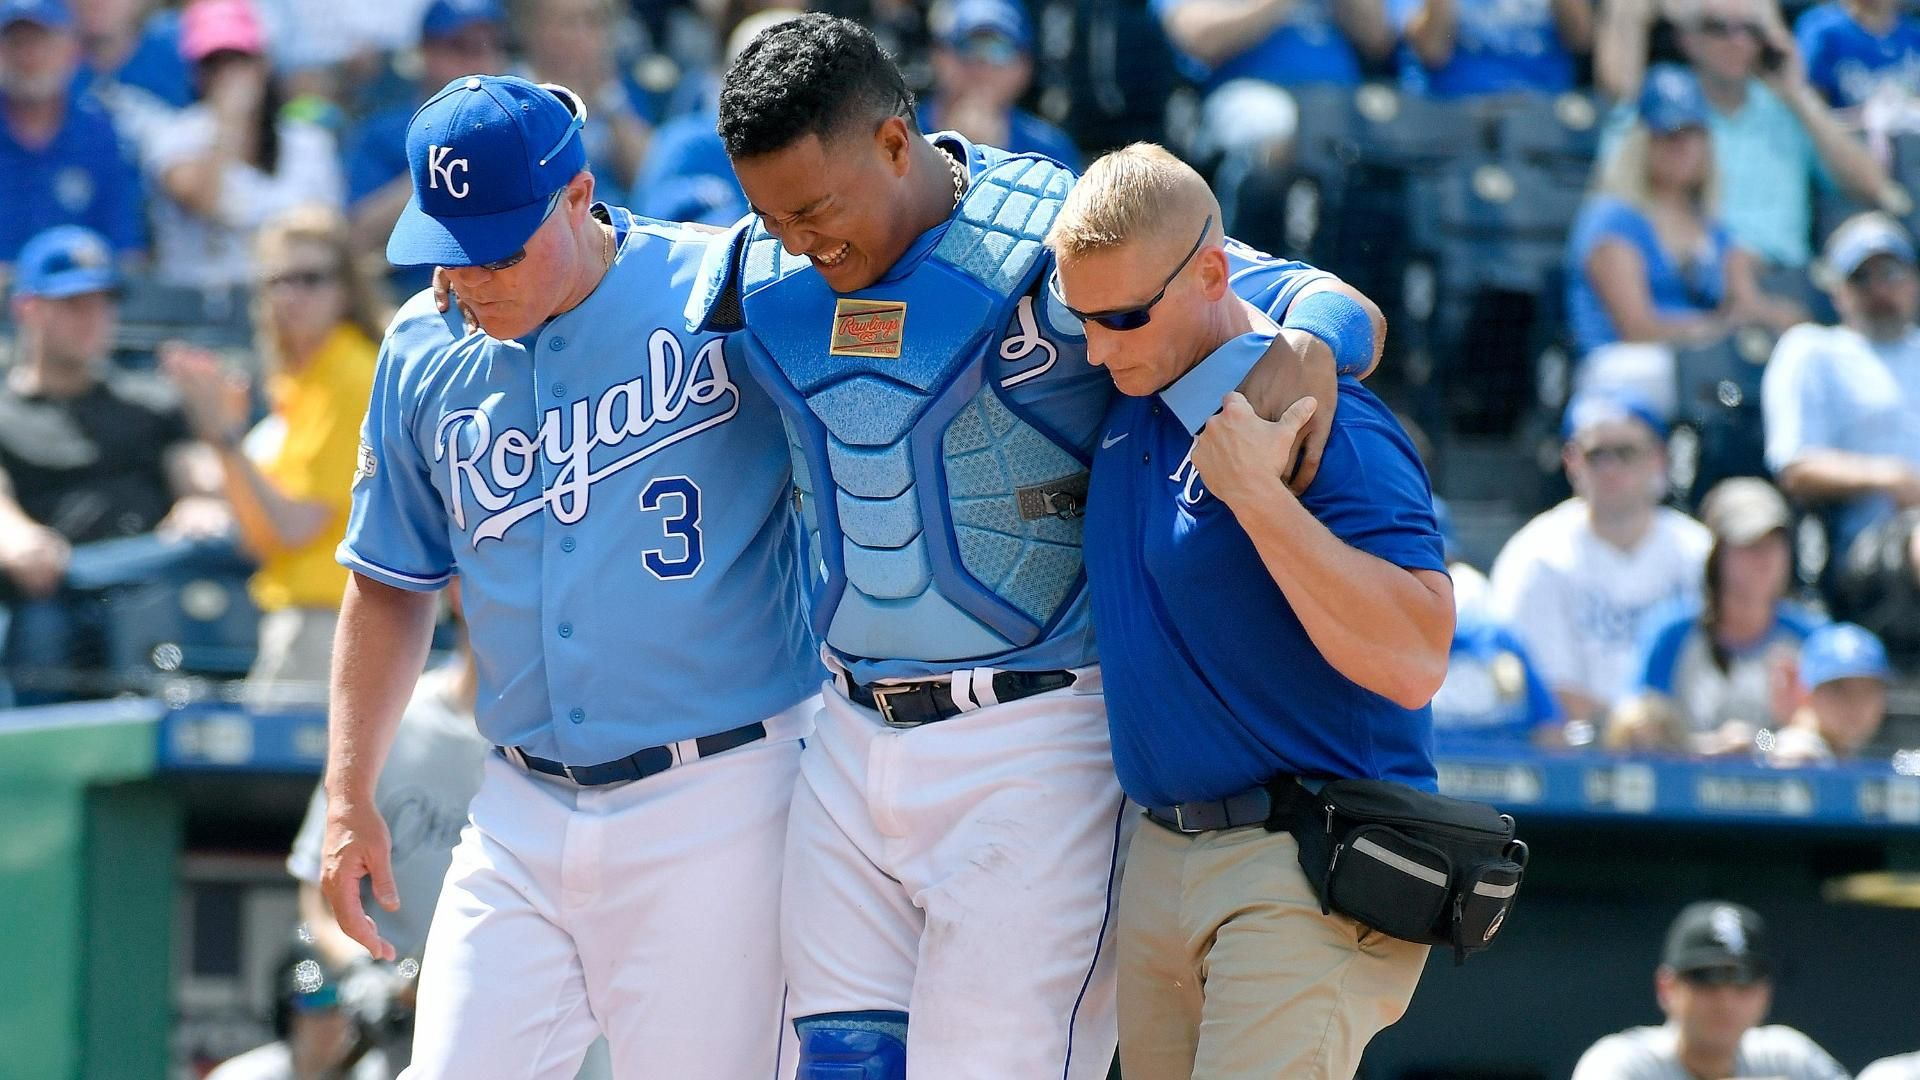 https://secure.espncdn.com/combiner/i?img=/media/motion/2016/0528/dm_160528_mlb_salvador_perez_injury1363/dm_160528_mlb_salvador_perez_injury1363.jpg